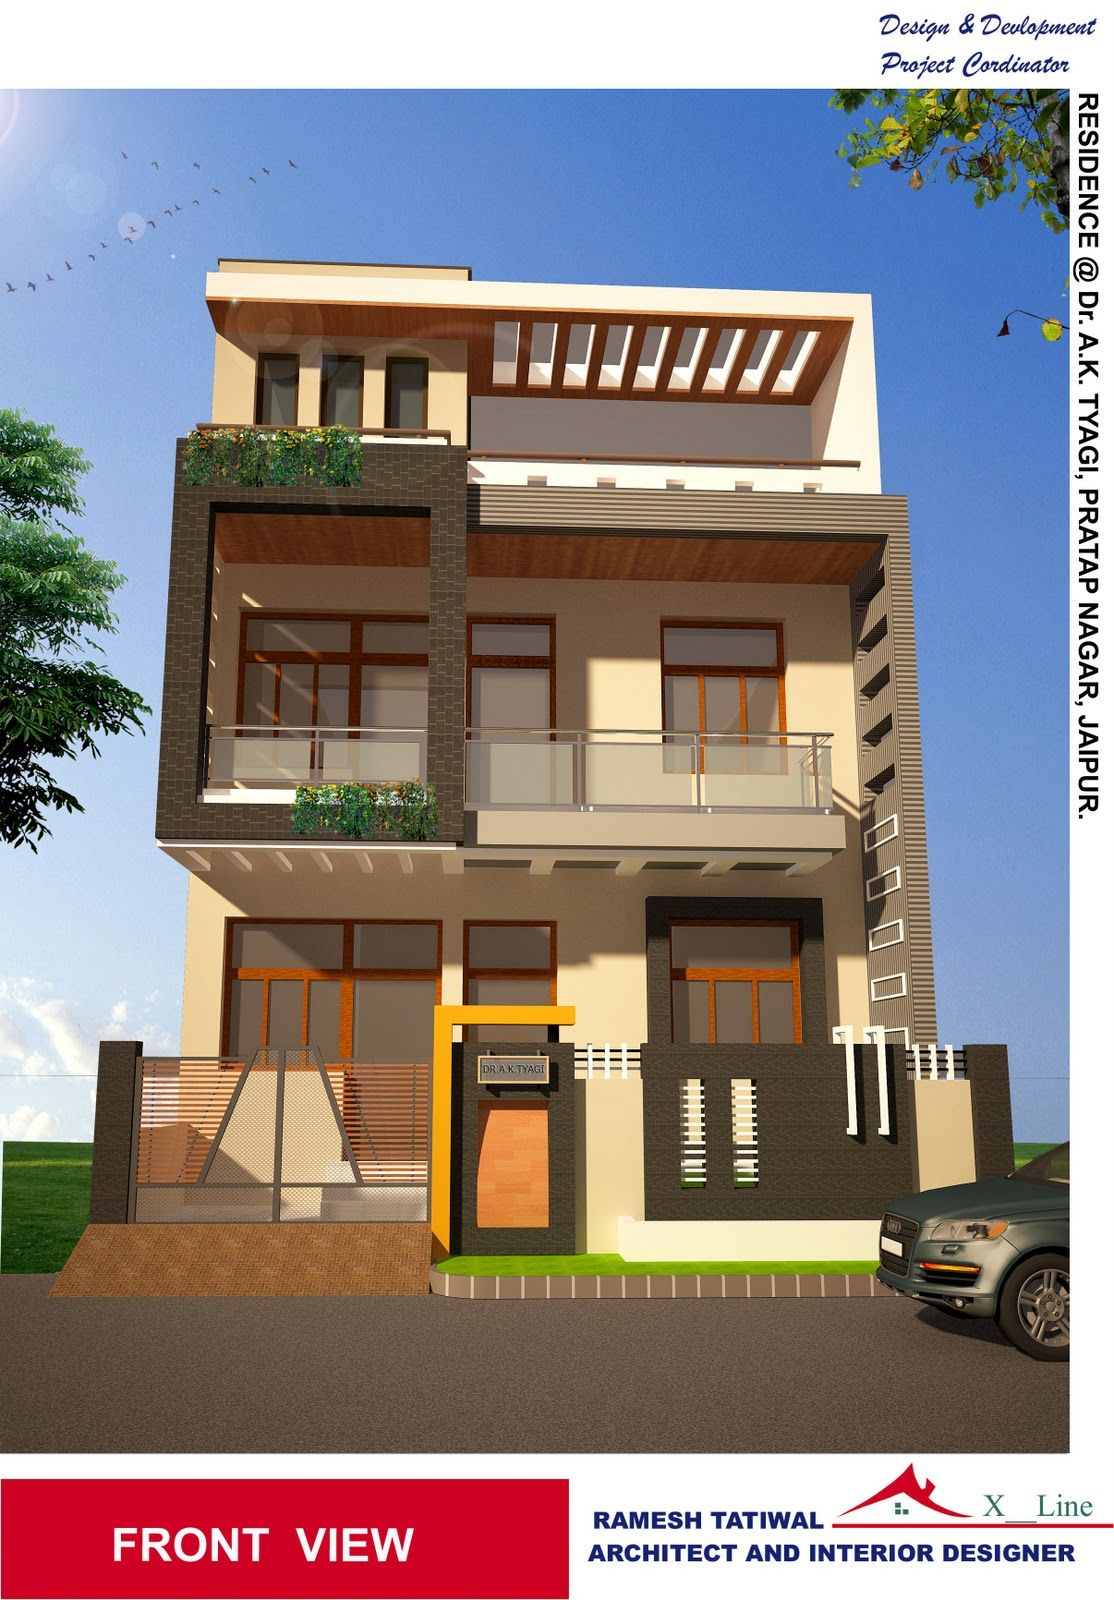 Housedesigns modern indian home architecture design from for Home plan design india